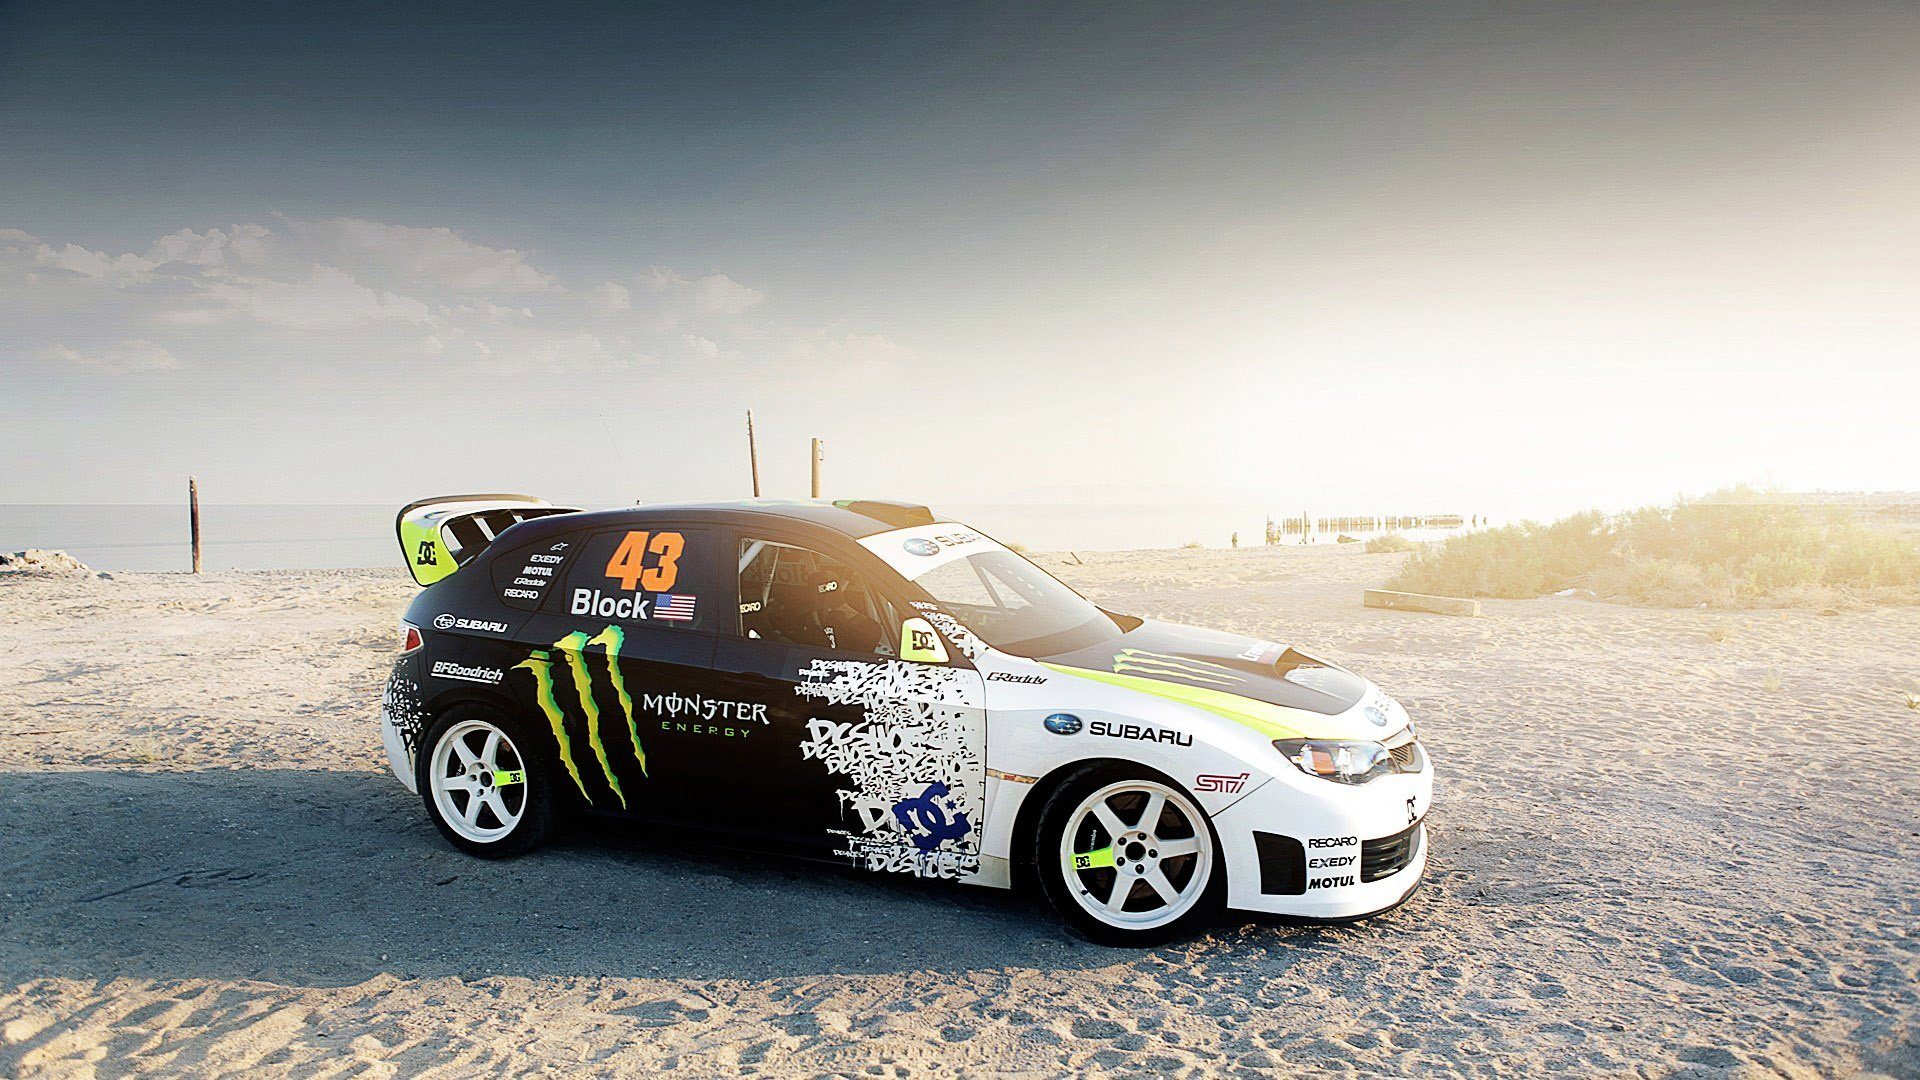 New Rally Cars For Sale   HD Wallpapers Widescreen   1920x1080 1920x1080